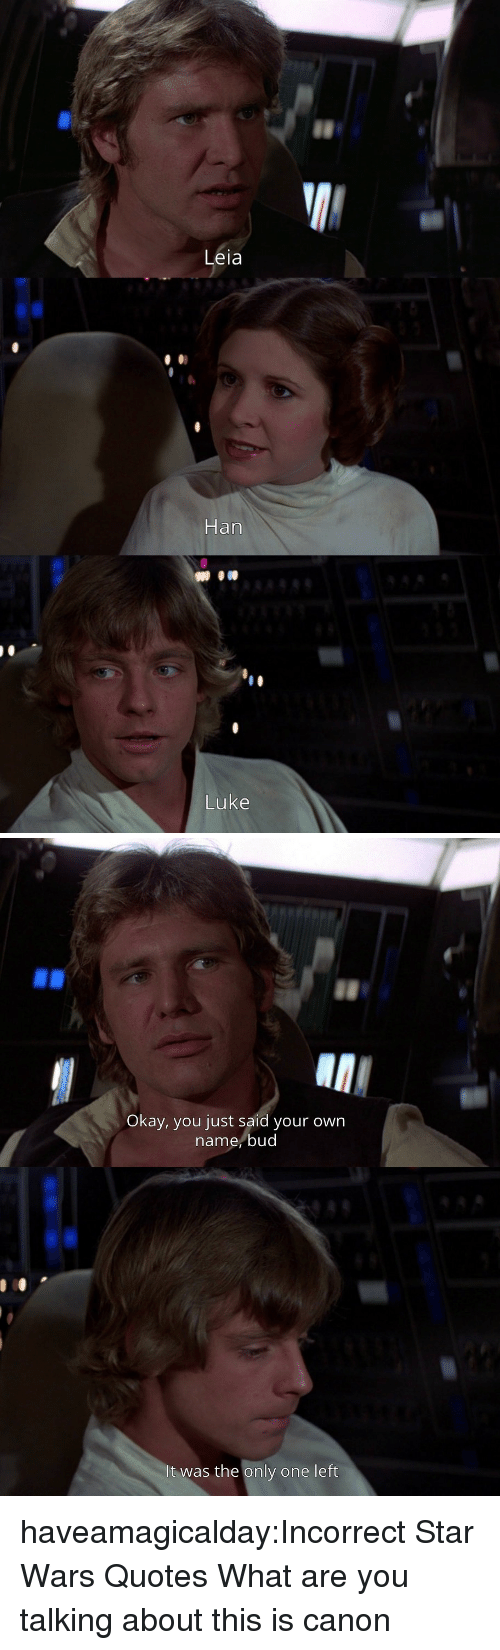 what-are-you-talking-about: Leia  Han  Luke   Okay, you just said your own  name,bud  It was the only one left haveamagicalday:Incorrect Star Wars Quotes  What are you talking about this is canon